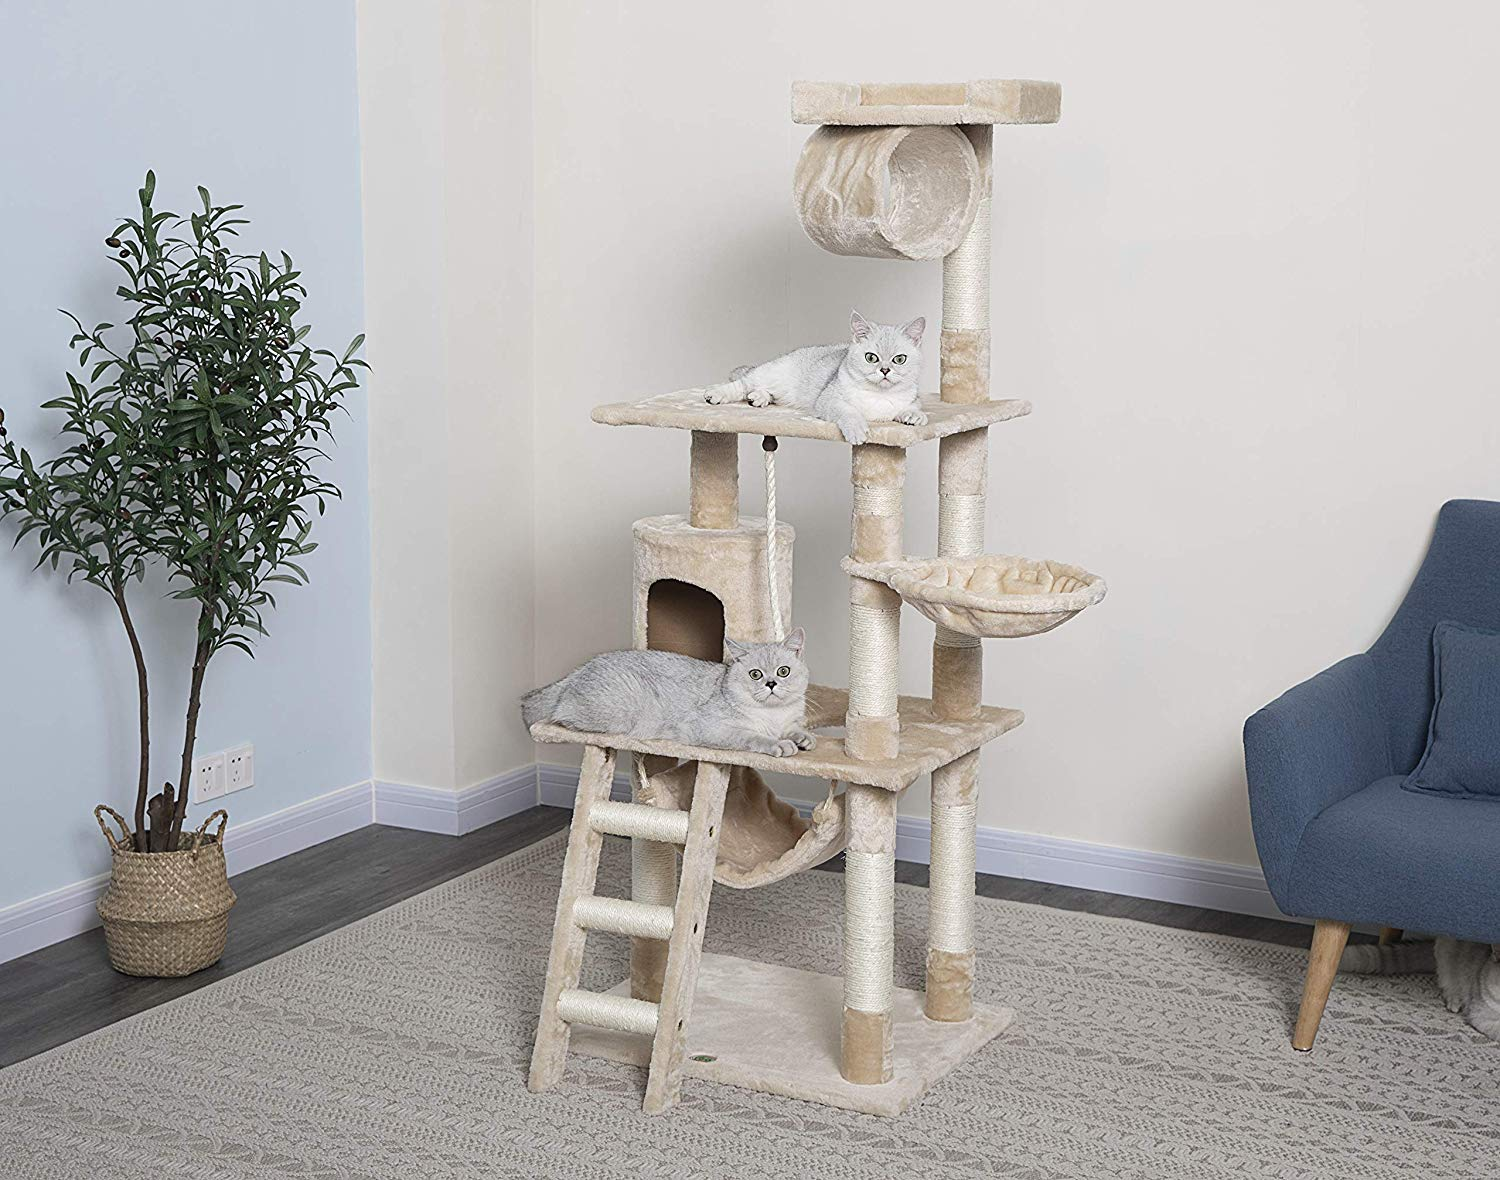 Go pet Club 62- inched Cat Tree